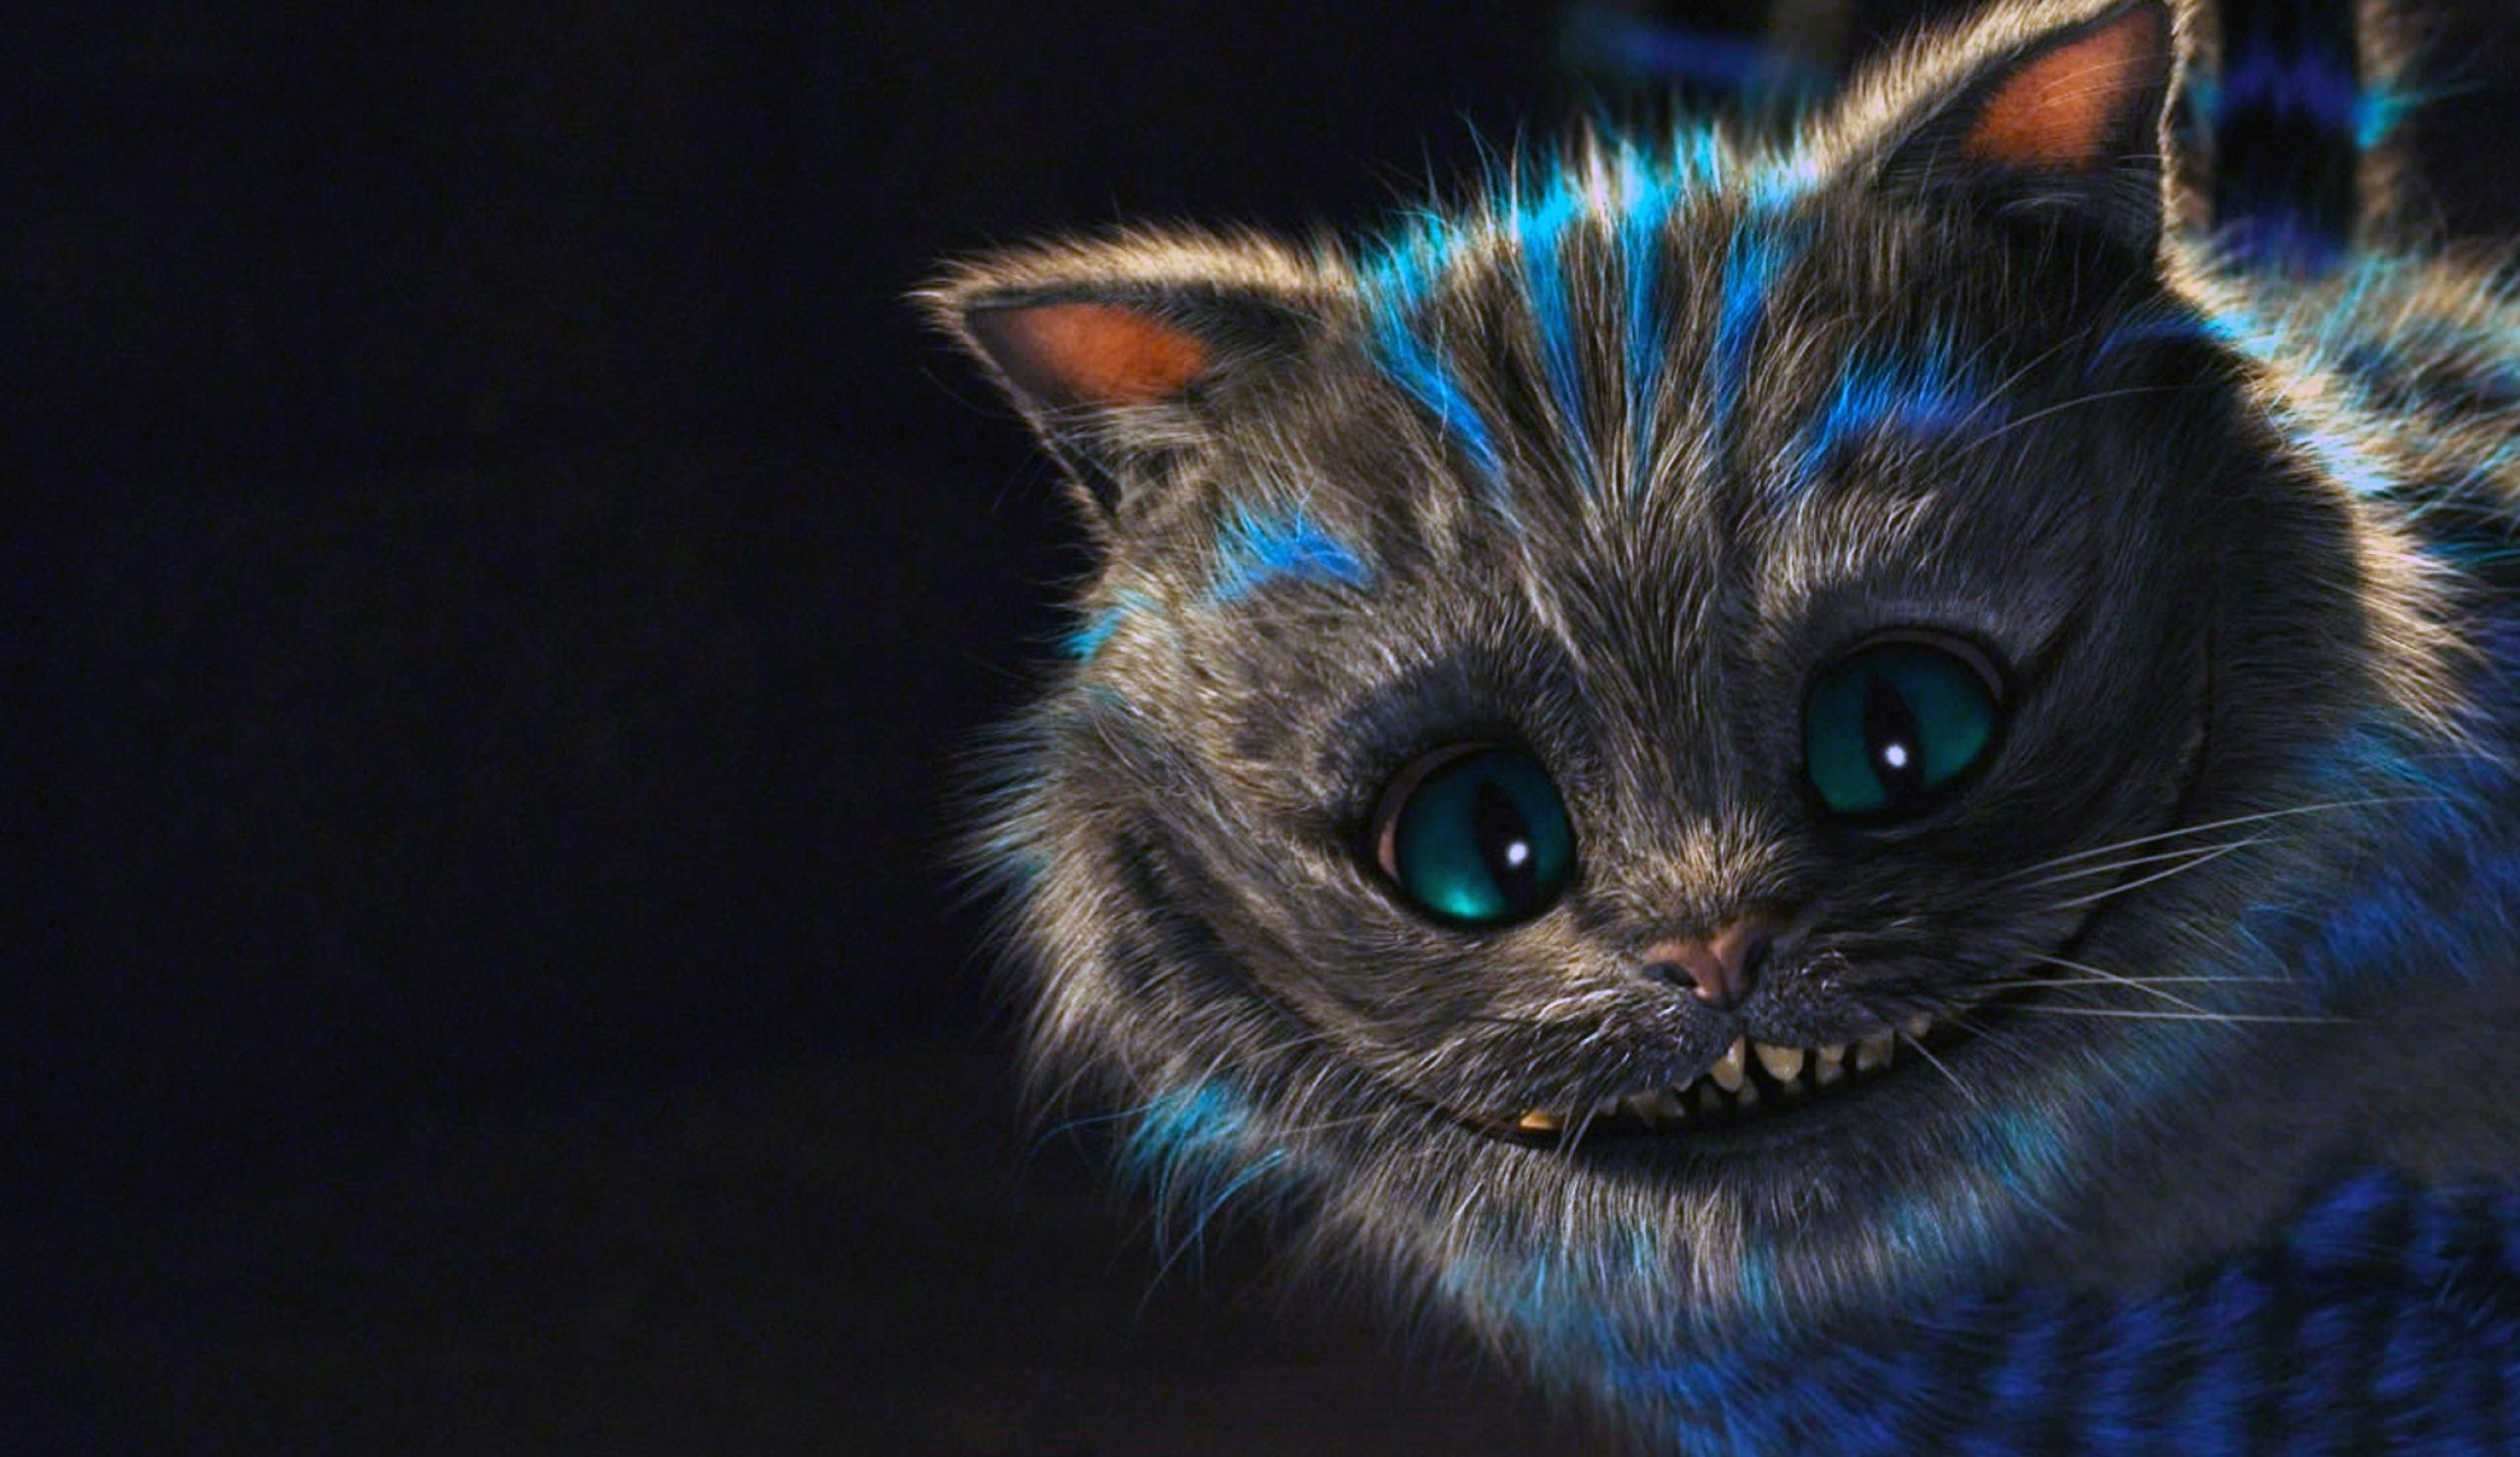 Cheshire Cat Wallpaper Tumblr Cats Wallpaper For Laptop 355012 Hd Wallpaper Backgrounds Download